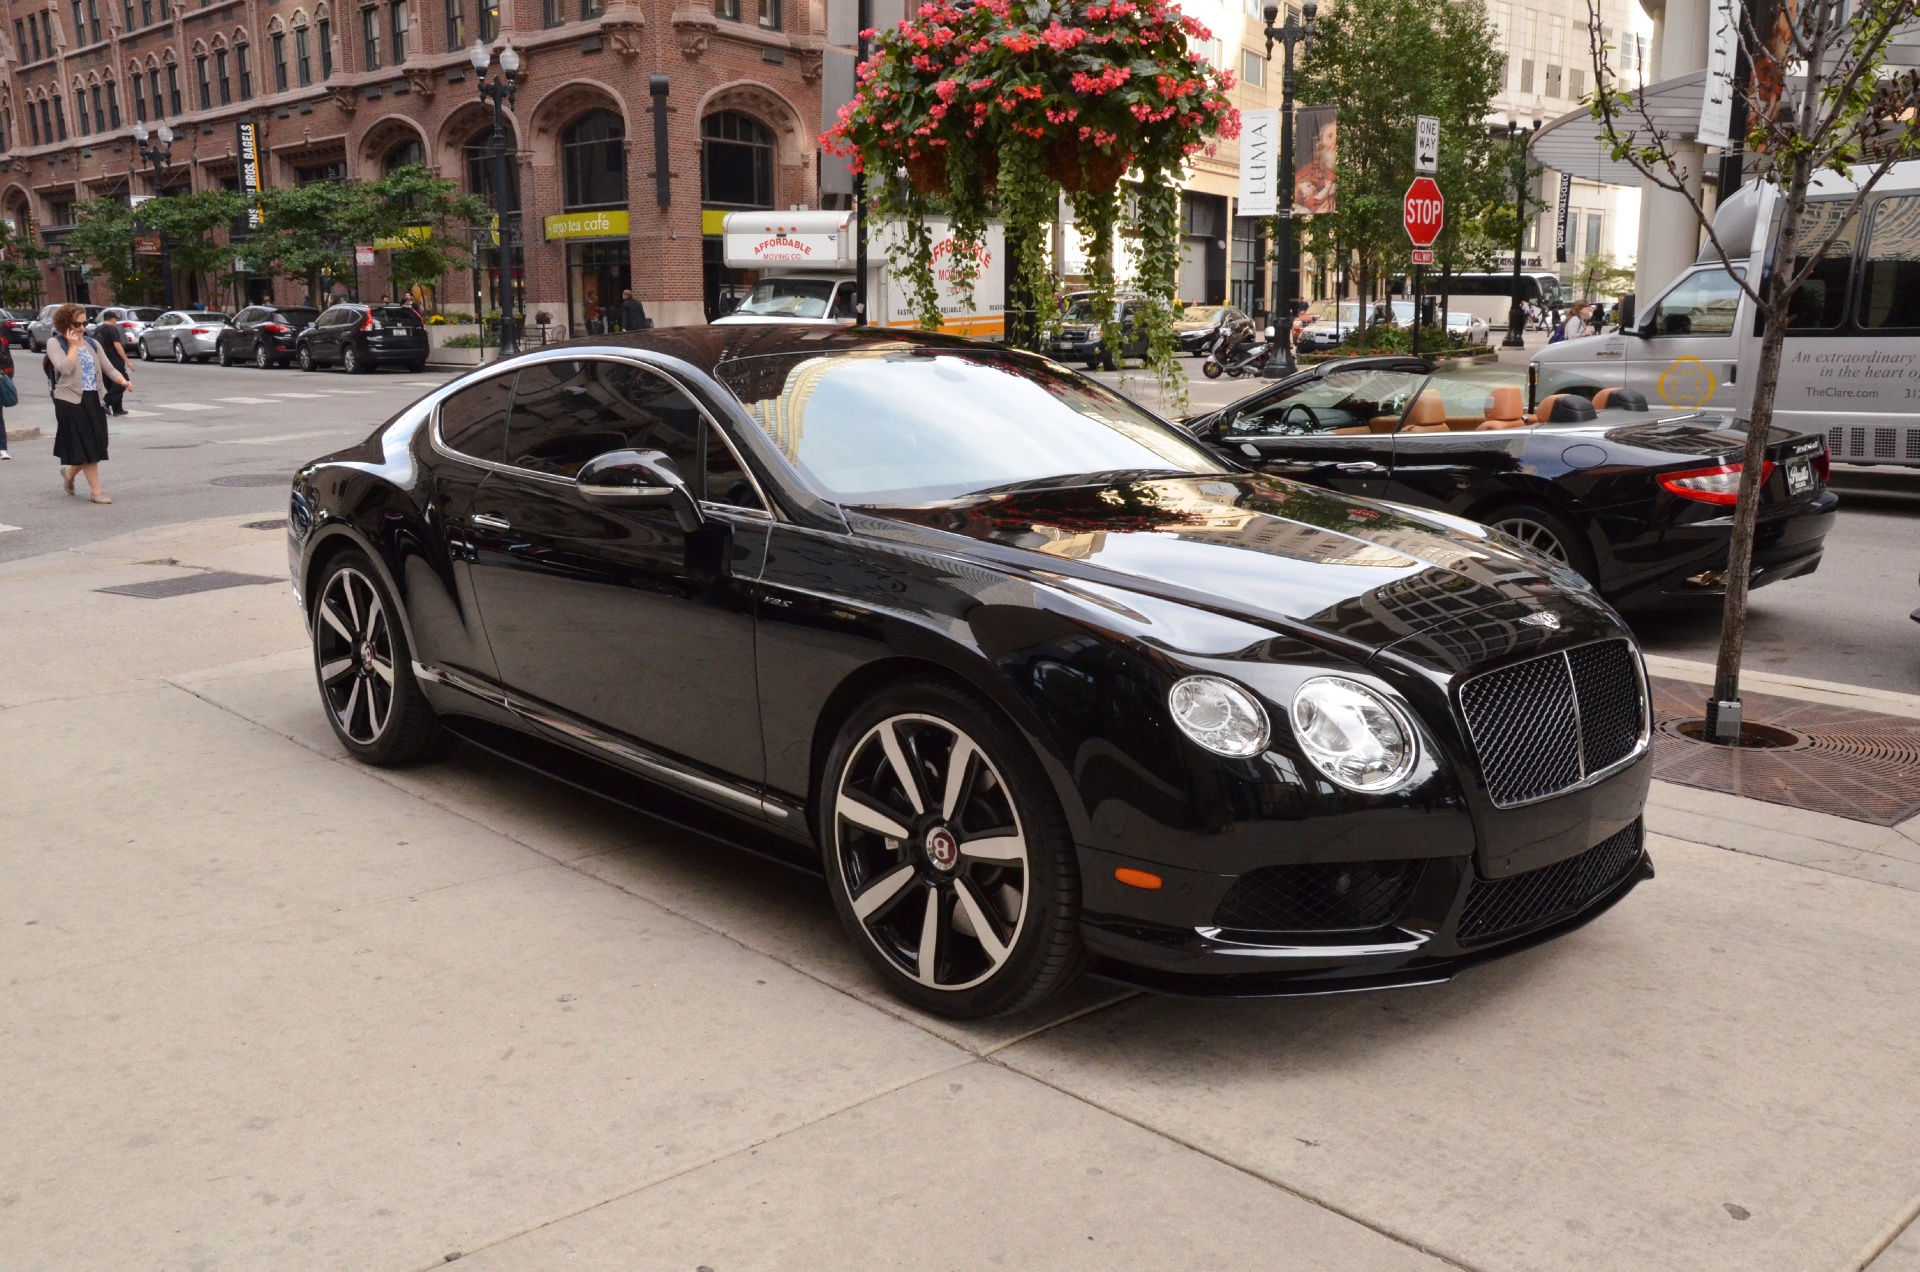 2014 bentley continental gt v8 s stock b632a for sale near new 2014 bentley continental gt v8 s chicago il vanachro Gallery